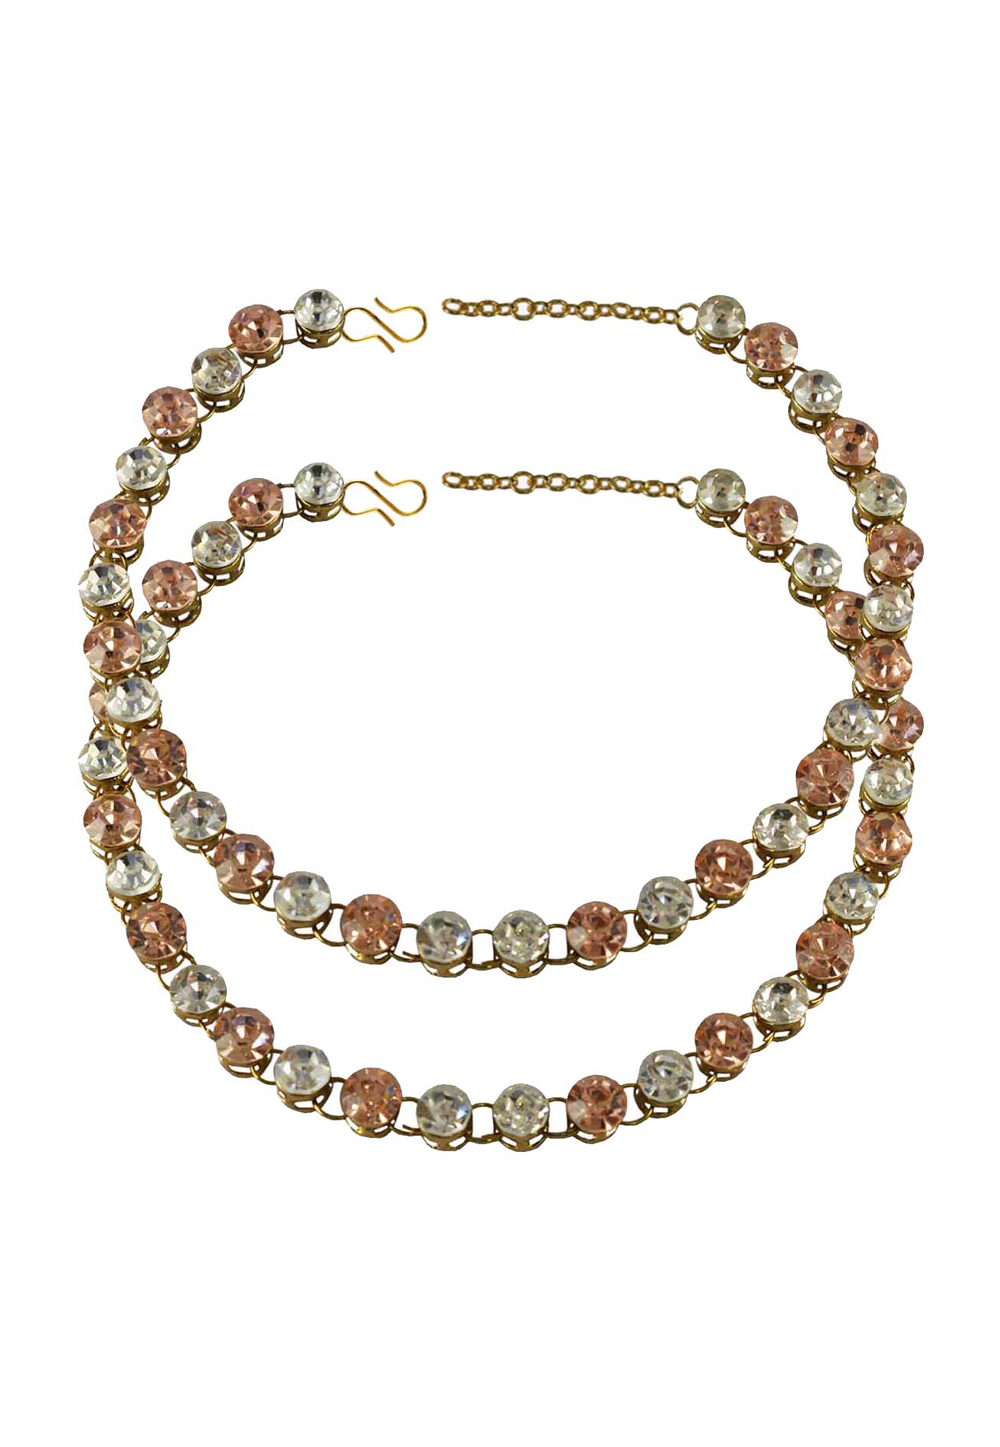 Peach Brass Gold Plated Anklets 171256